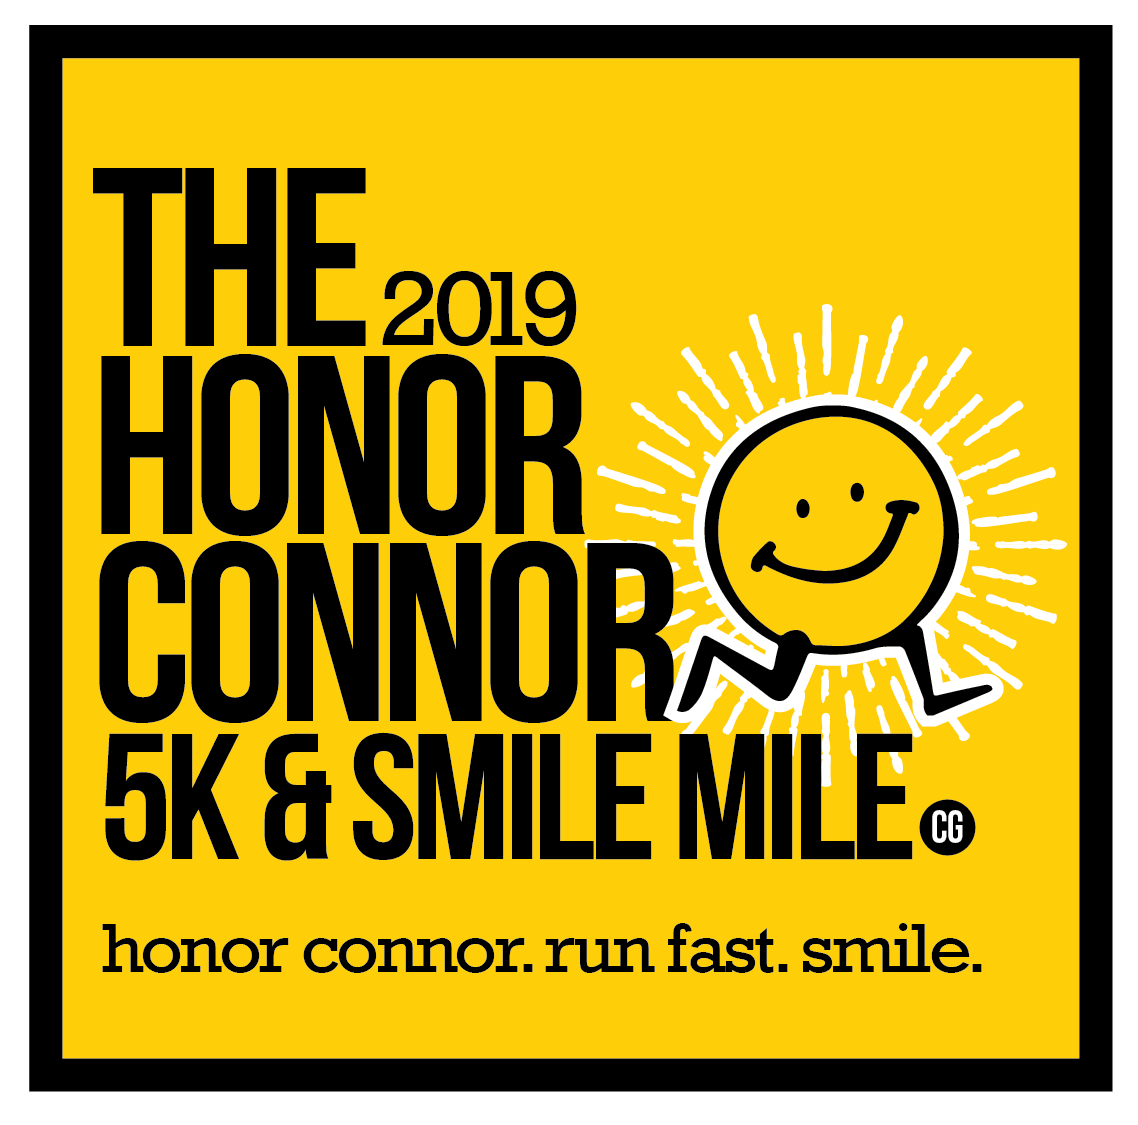 Honor Connor 5k and Smile Mile